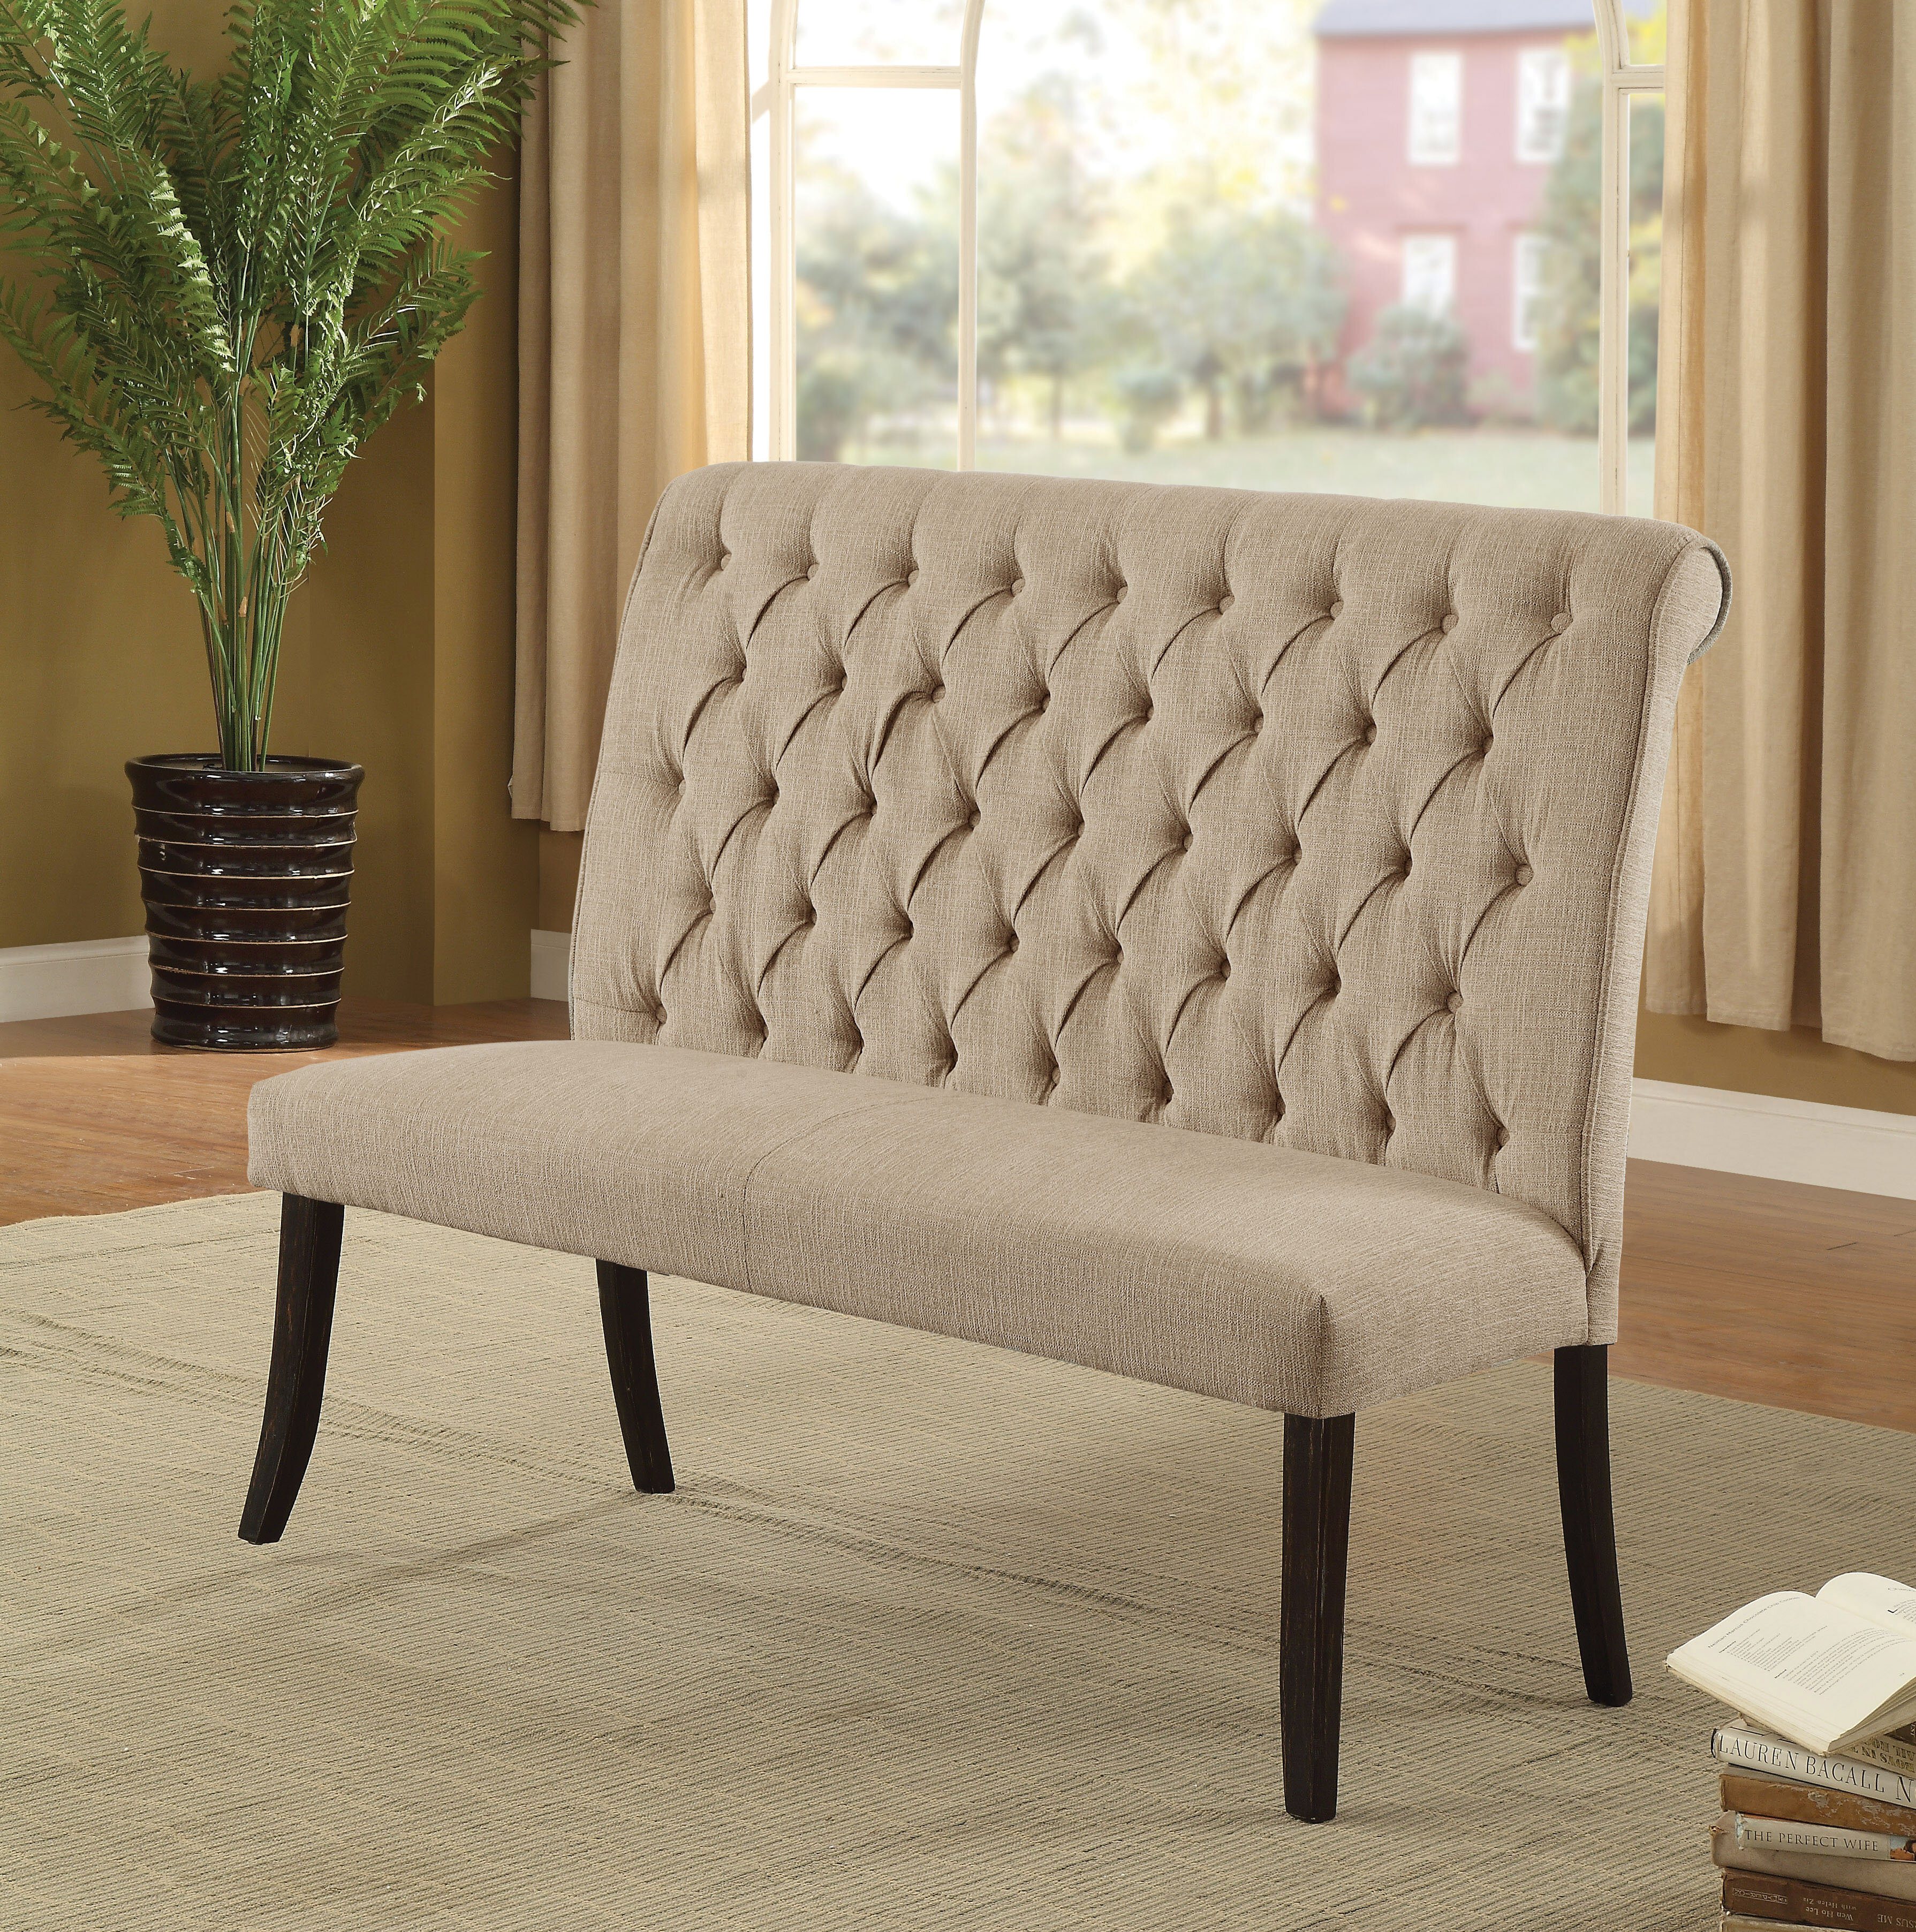 Darby Home Co Tomasello Upholstered Bench Wayfair